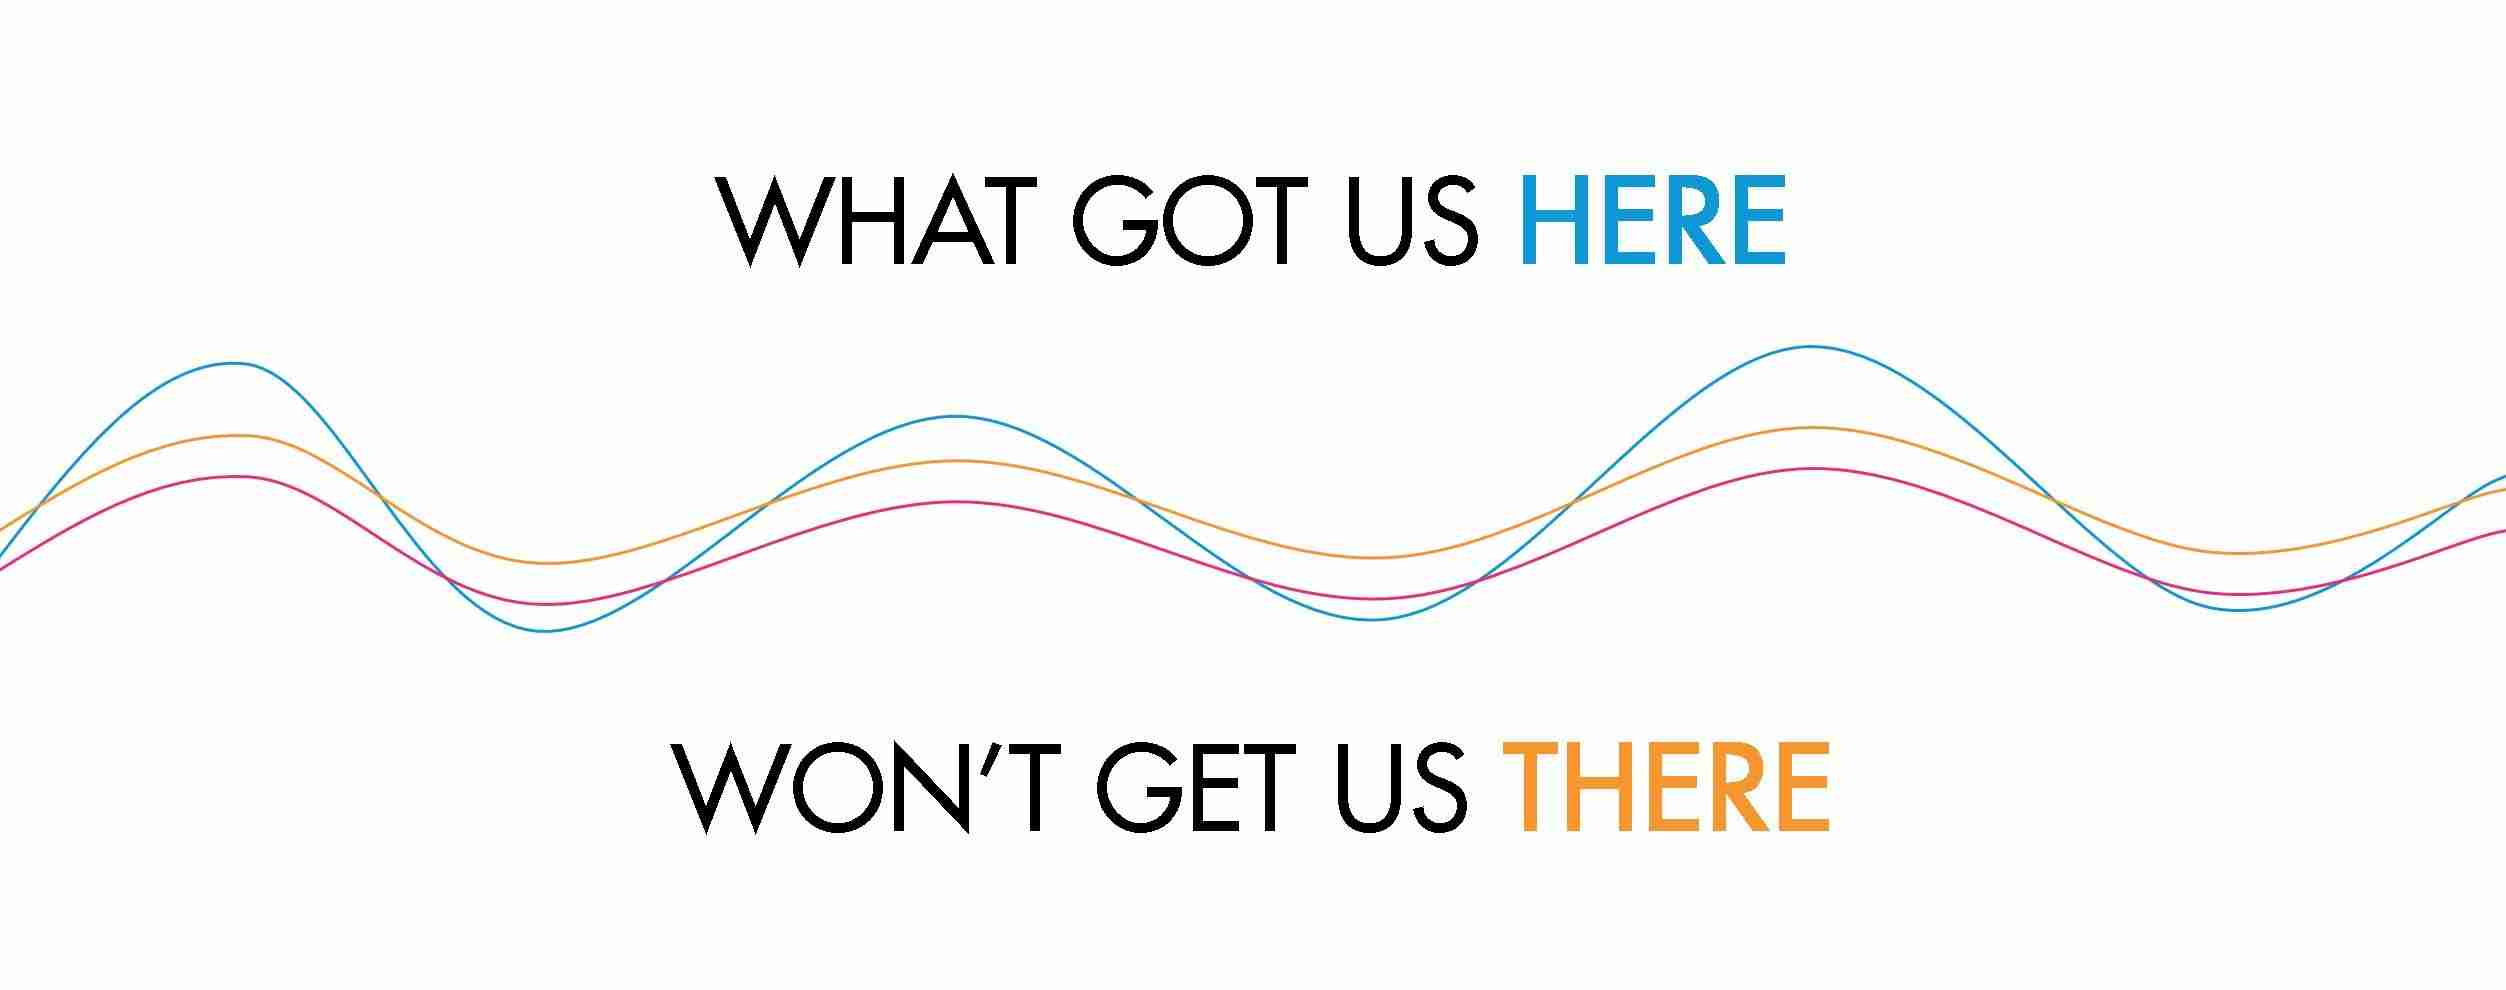 An image of the stylised words 'What got us here won't get us there', referencing the need for an innovation strategy in the face of new developments in the world.